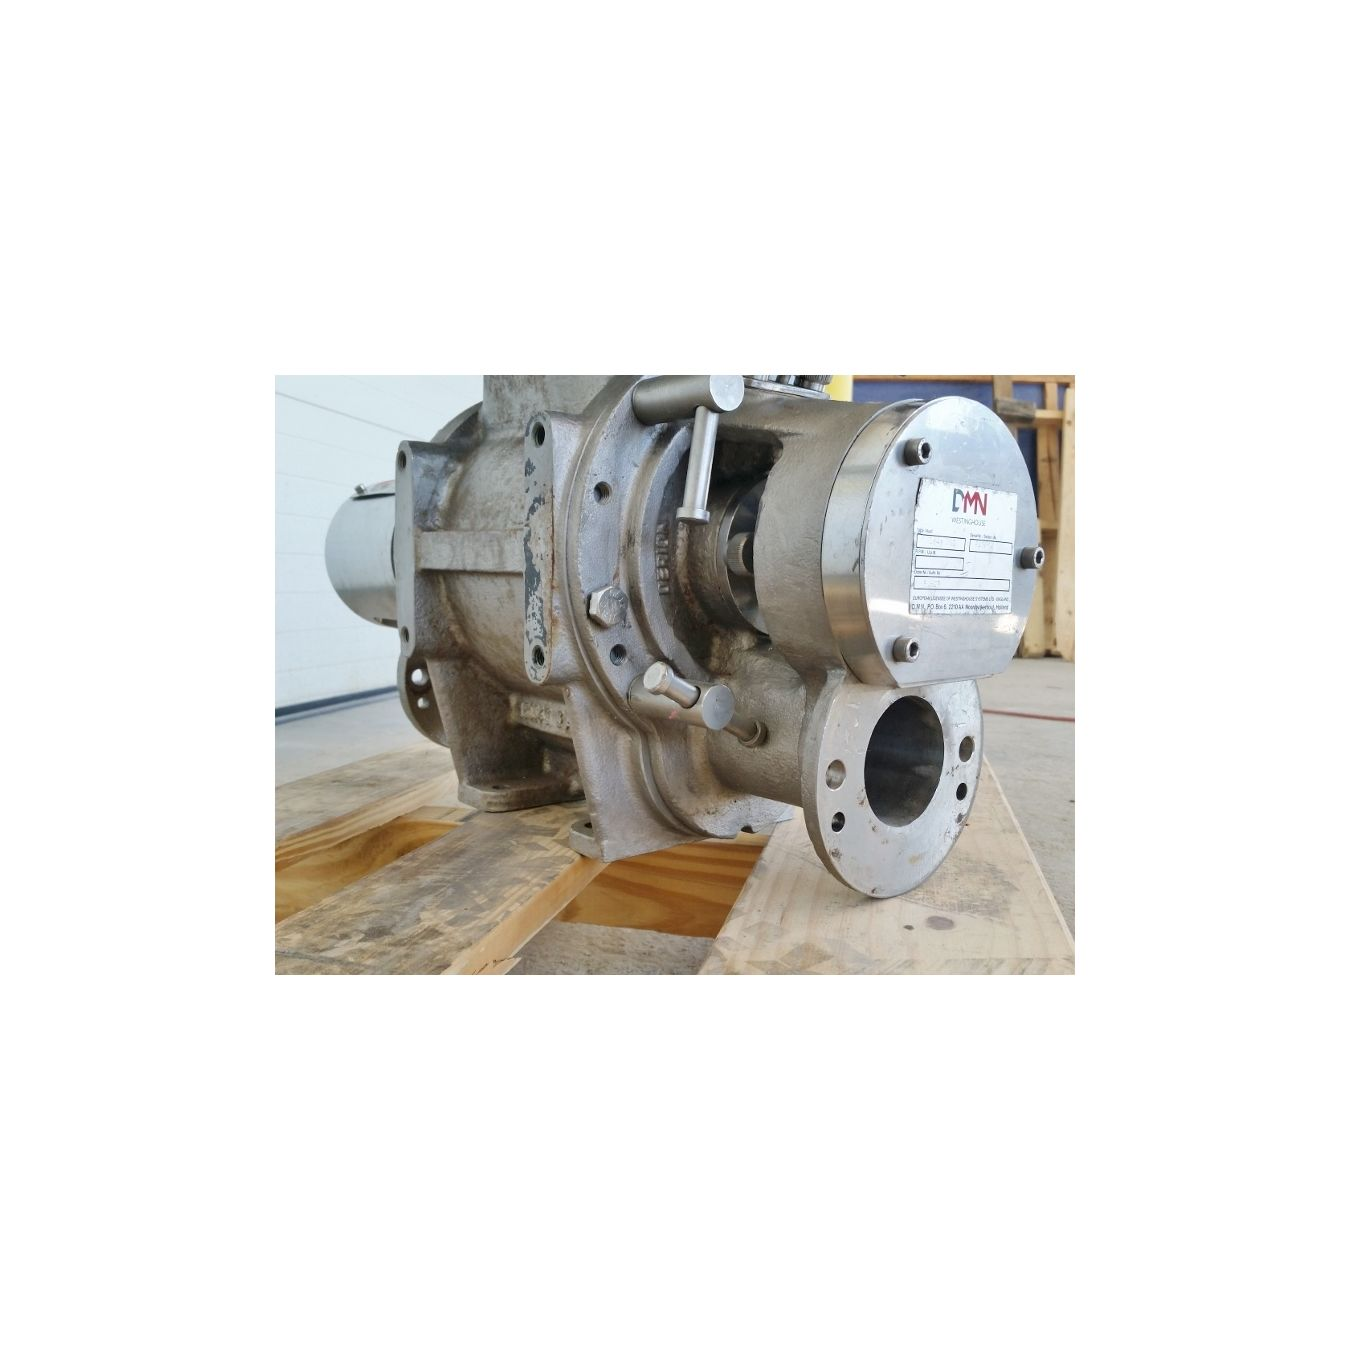 Used quot dmn westinghouse stainless a dairy food grade